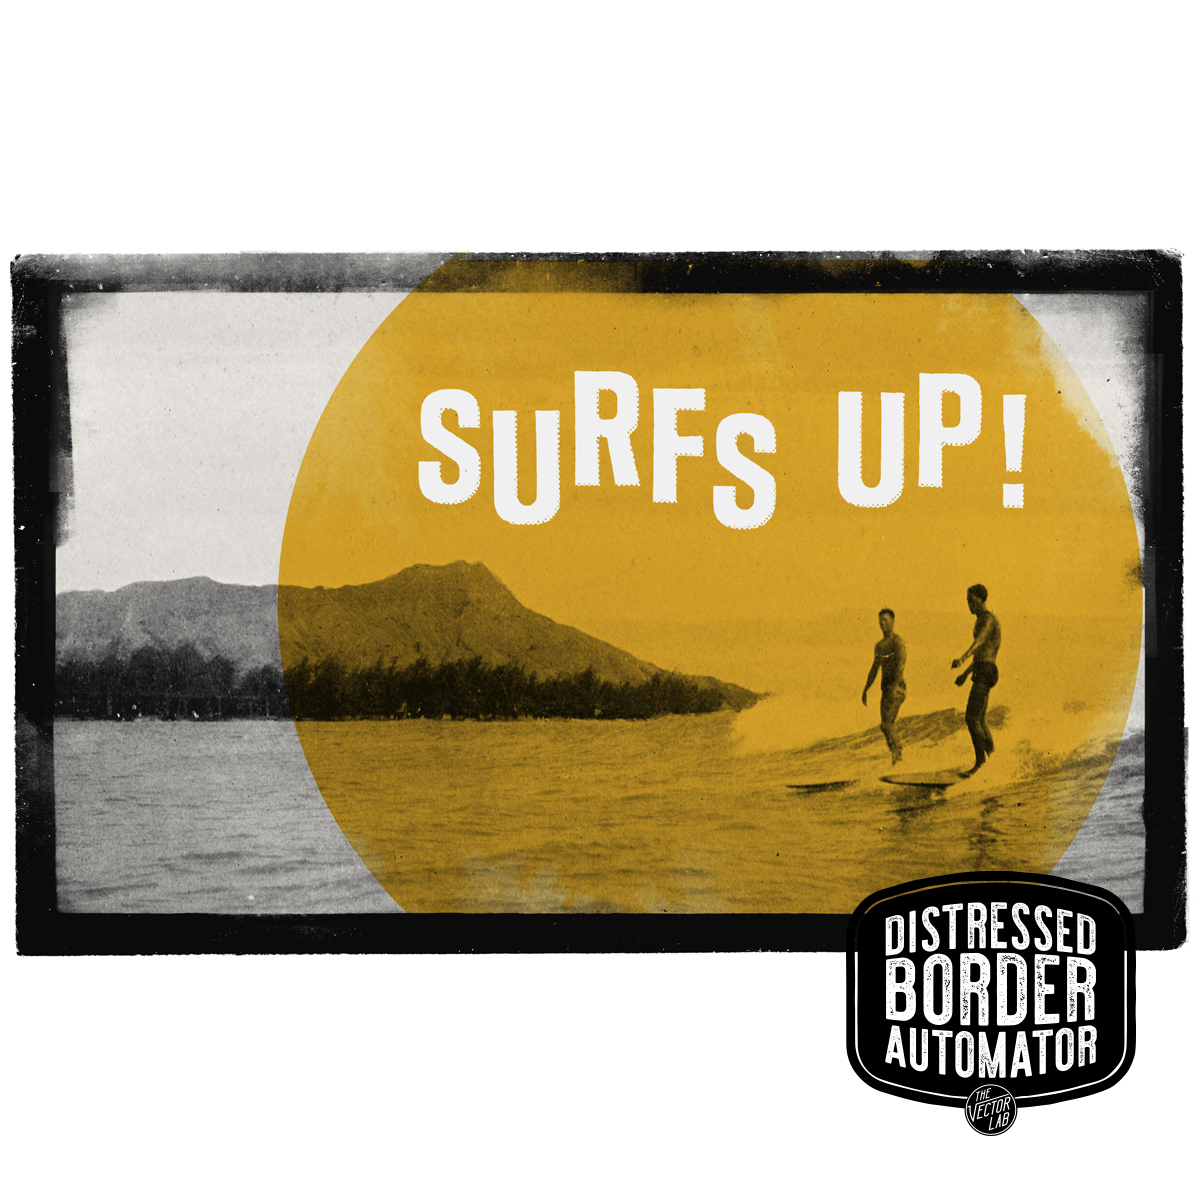 Surf's Up! Diamond Head Waikiki Surfing - Distressed Border Automator for Photoshop